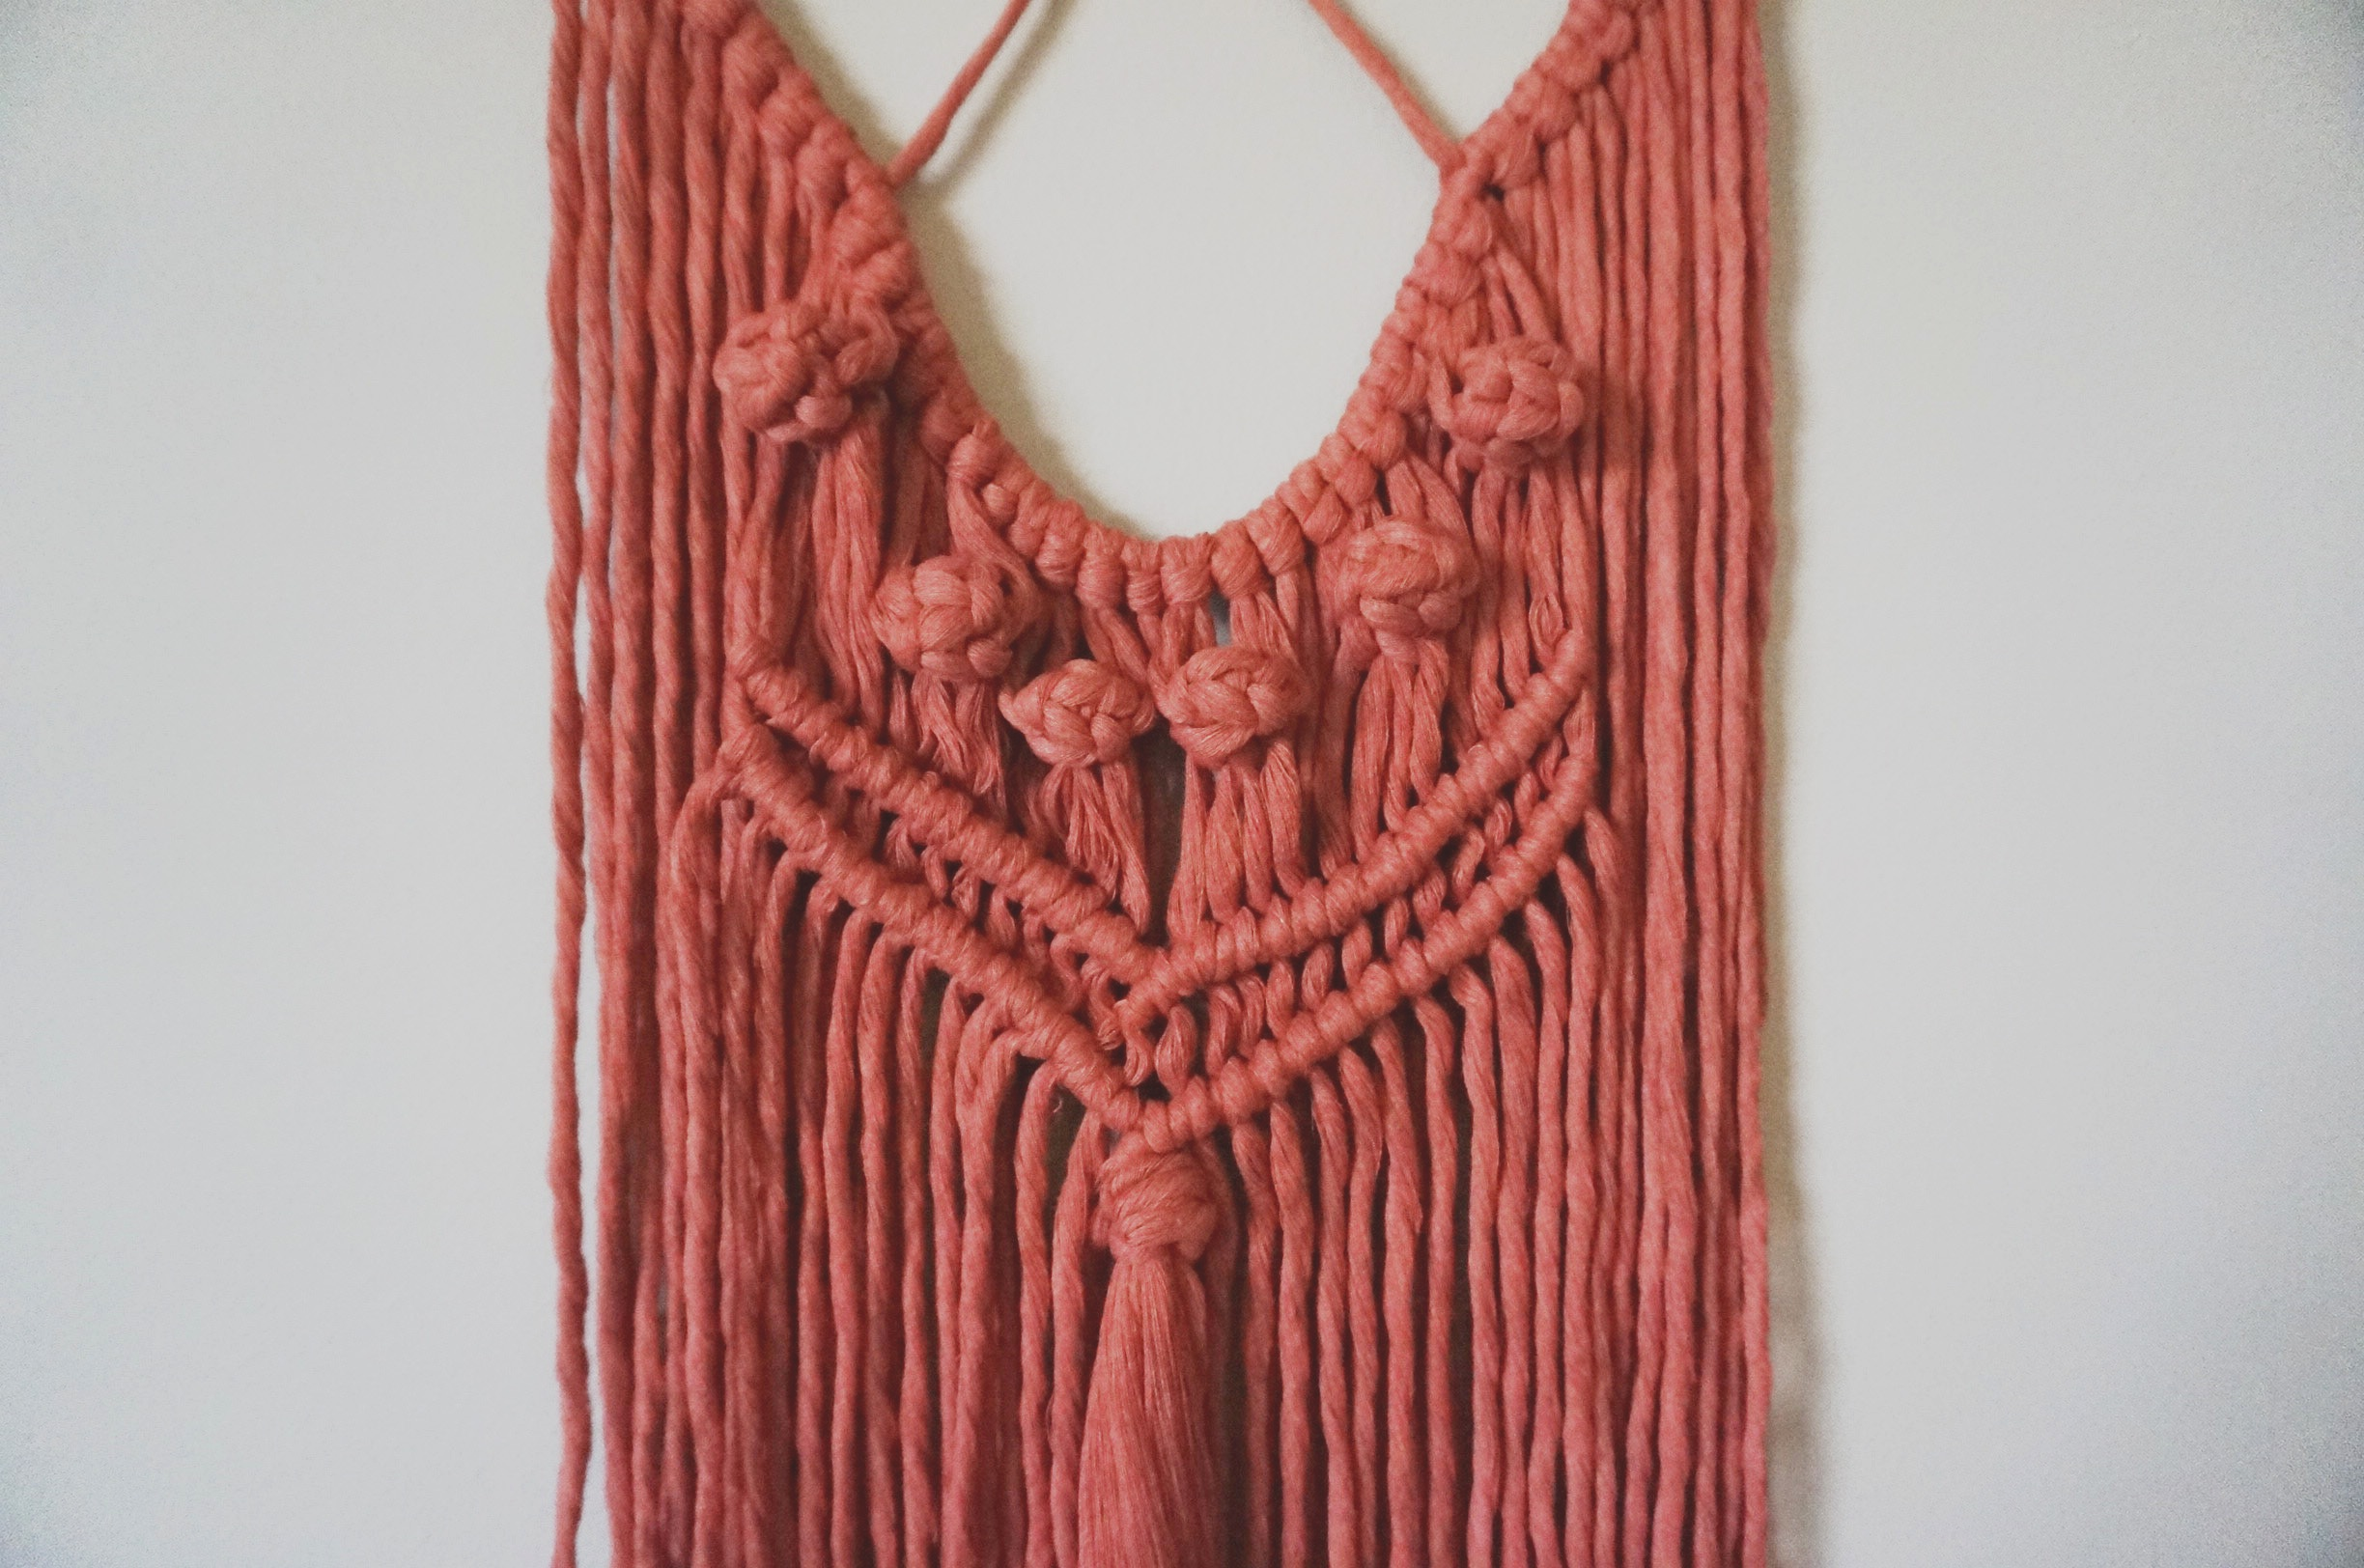 $52  |  Small Macrame Wall Hanging  |  Cinnamon